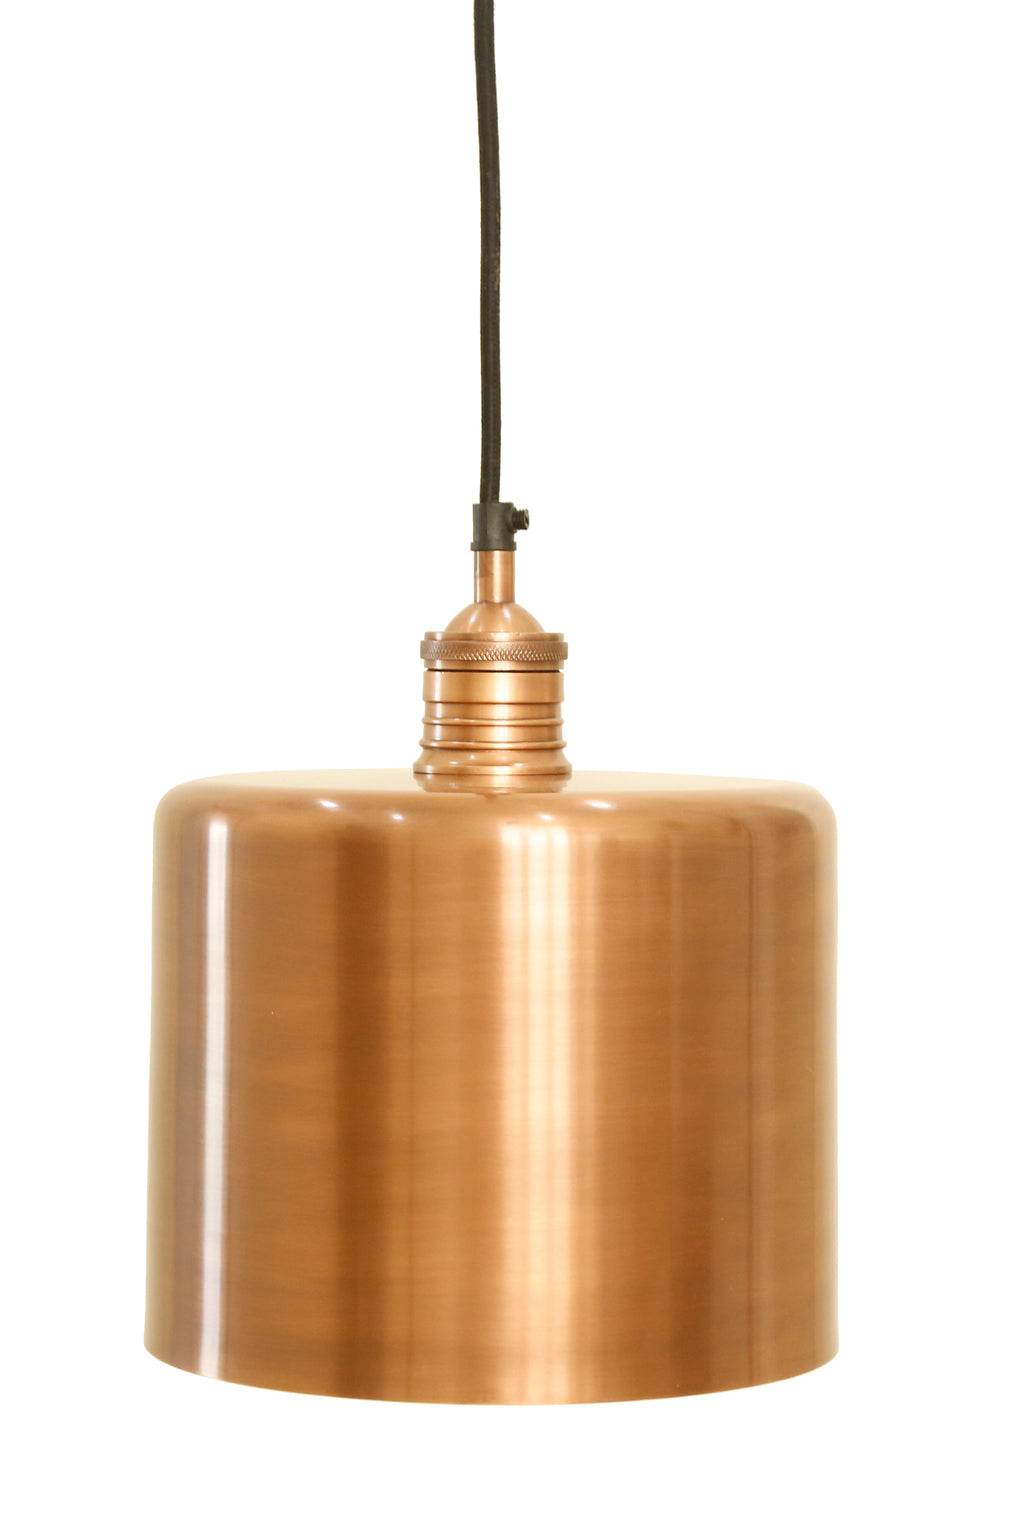 Zurich 2 Medium Antique Copper Drum Pendant Light